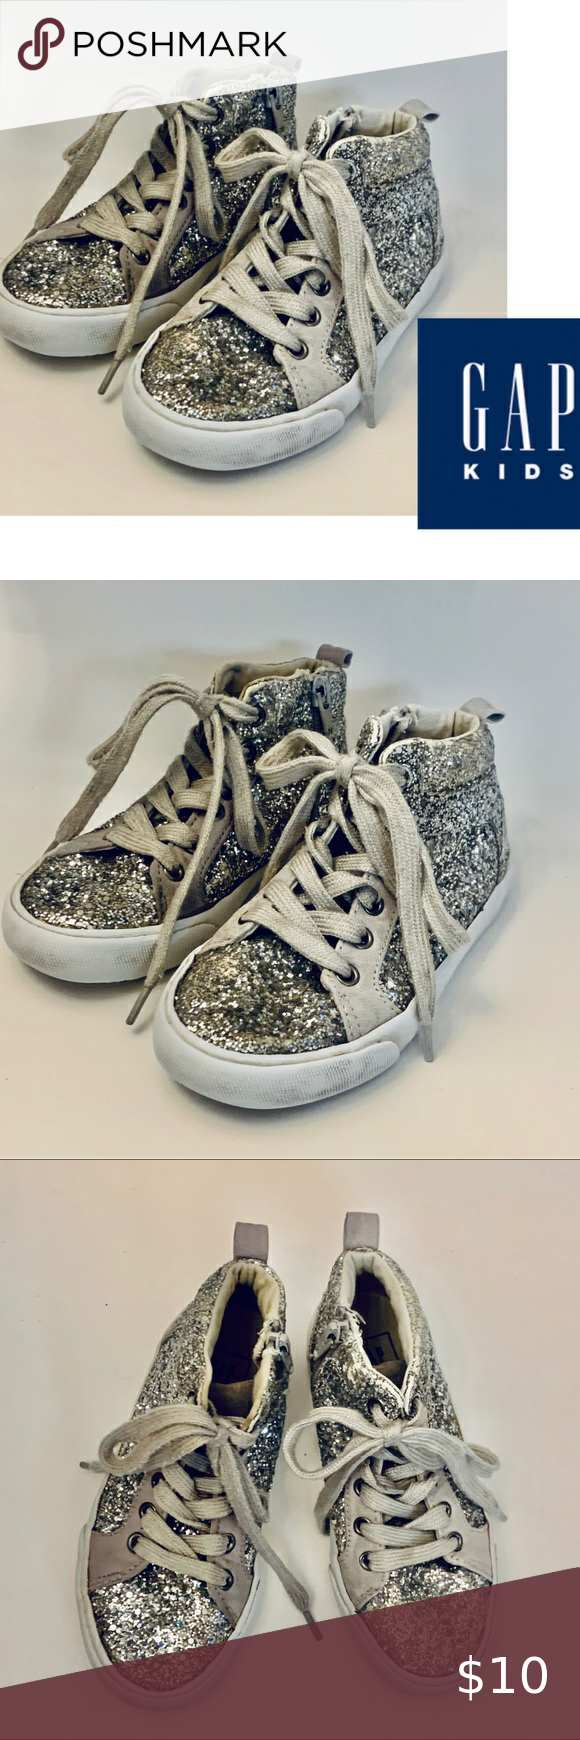 Big Girl GAP kids High top Shoes Sz 12 silver Big Girl GAP kids High top Shoes Sz 12  Color: silver Side zip for easy slip on Condition: Good with noticeable wear- see pictures  Bin A4 #0023 GAP Shoes Sneakers